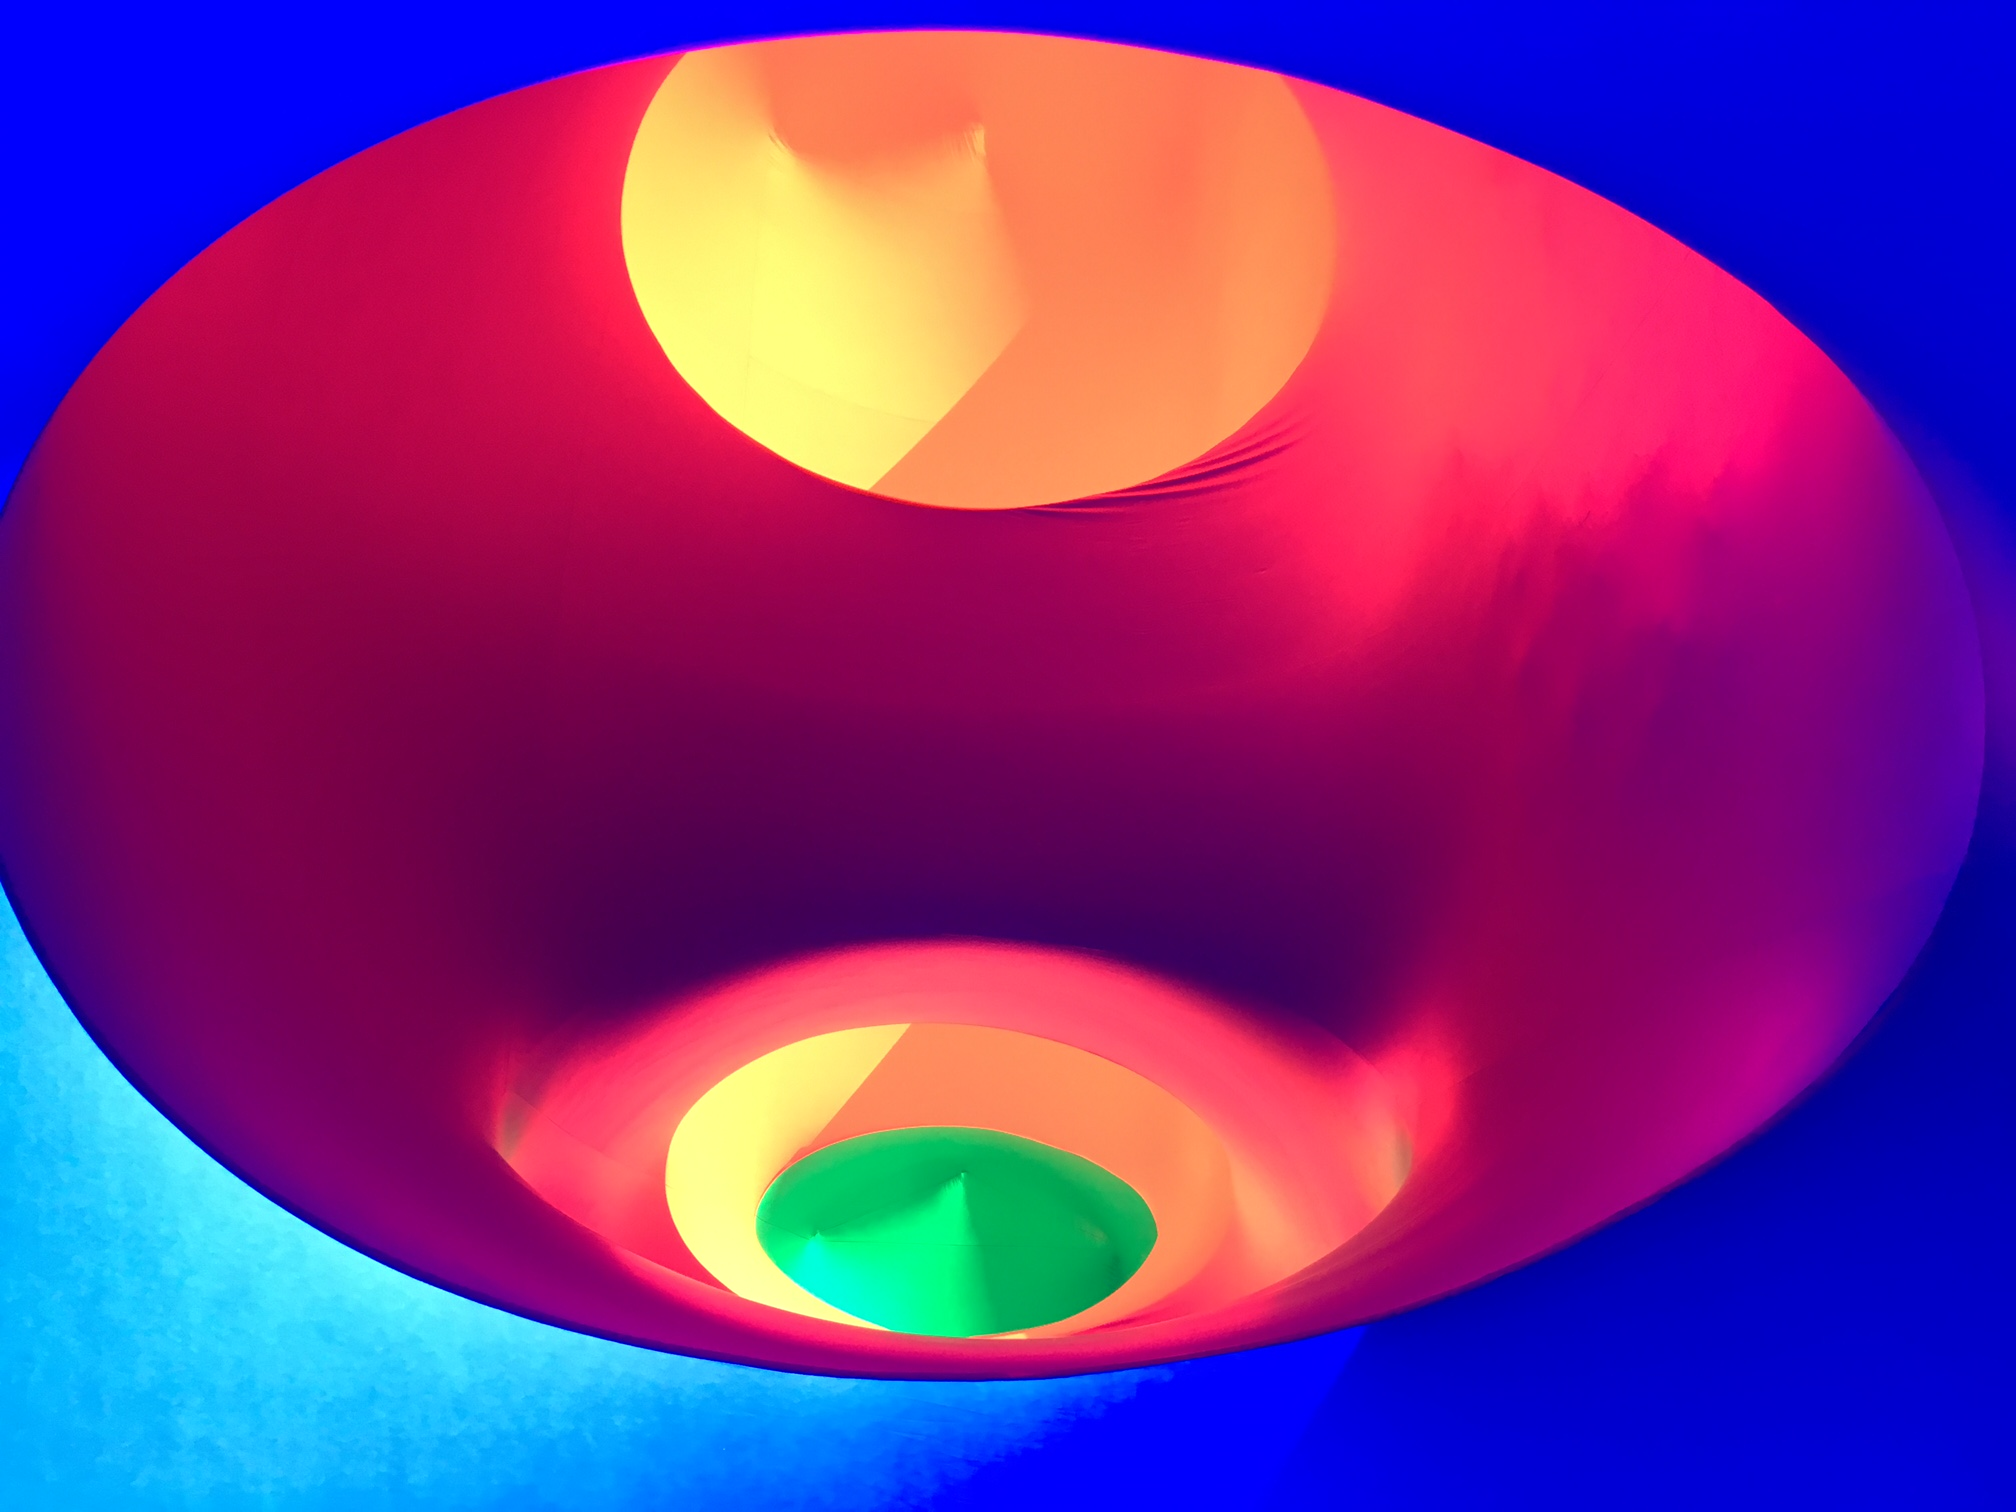 Colourscape is coming back to London: it's a must visit for